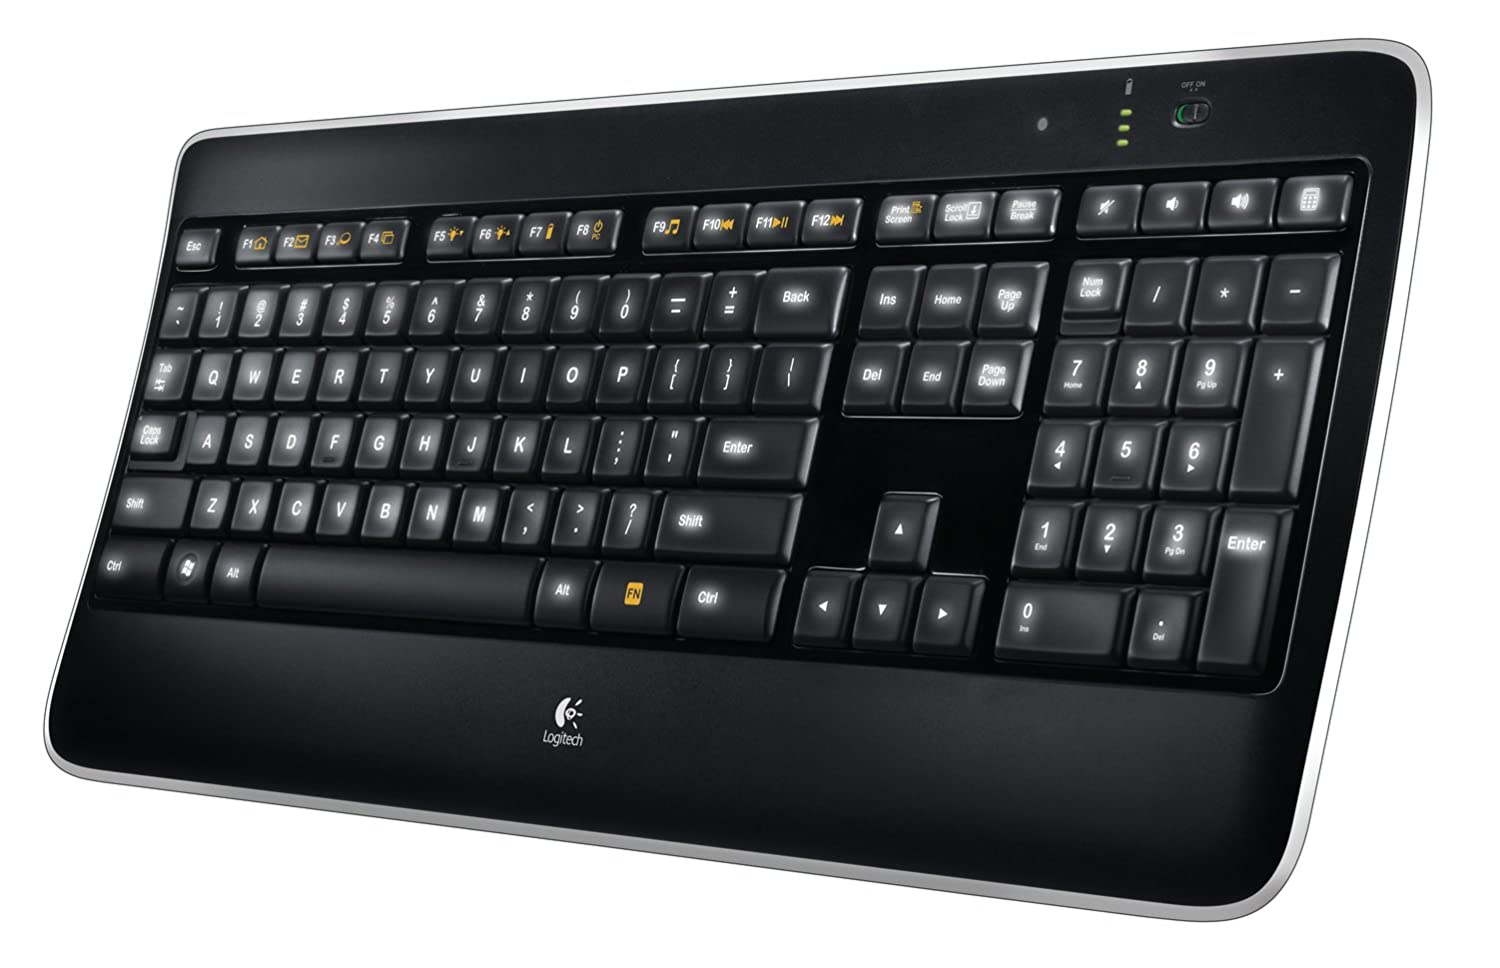 Clavier d'ordinateur LOGITECH WIRELESS ILLUMINATED K800 920002372 NOIR